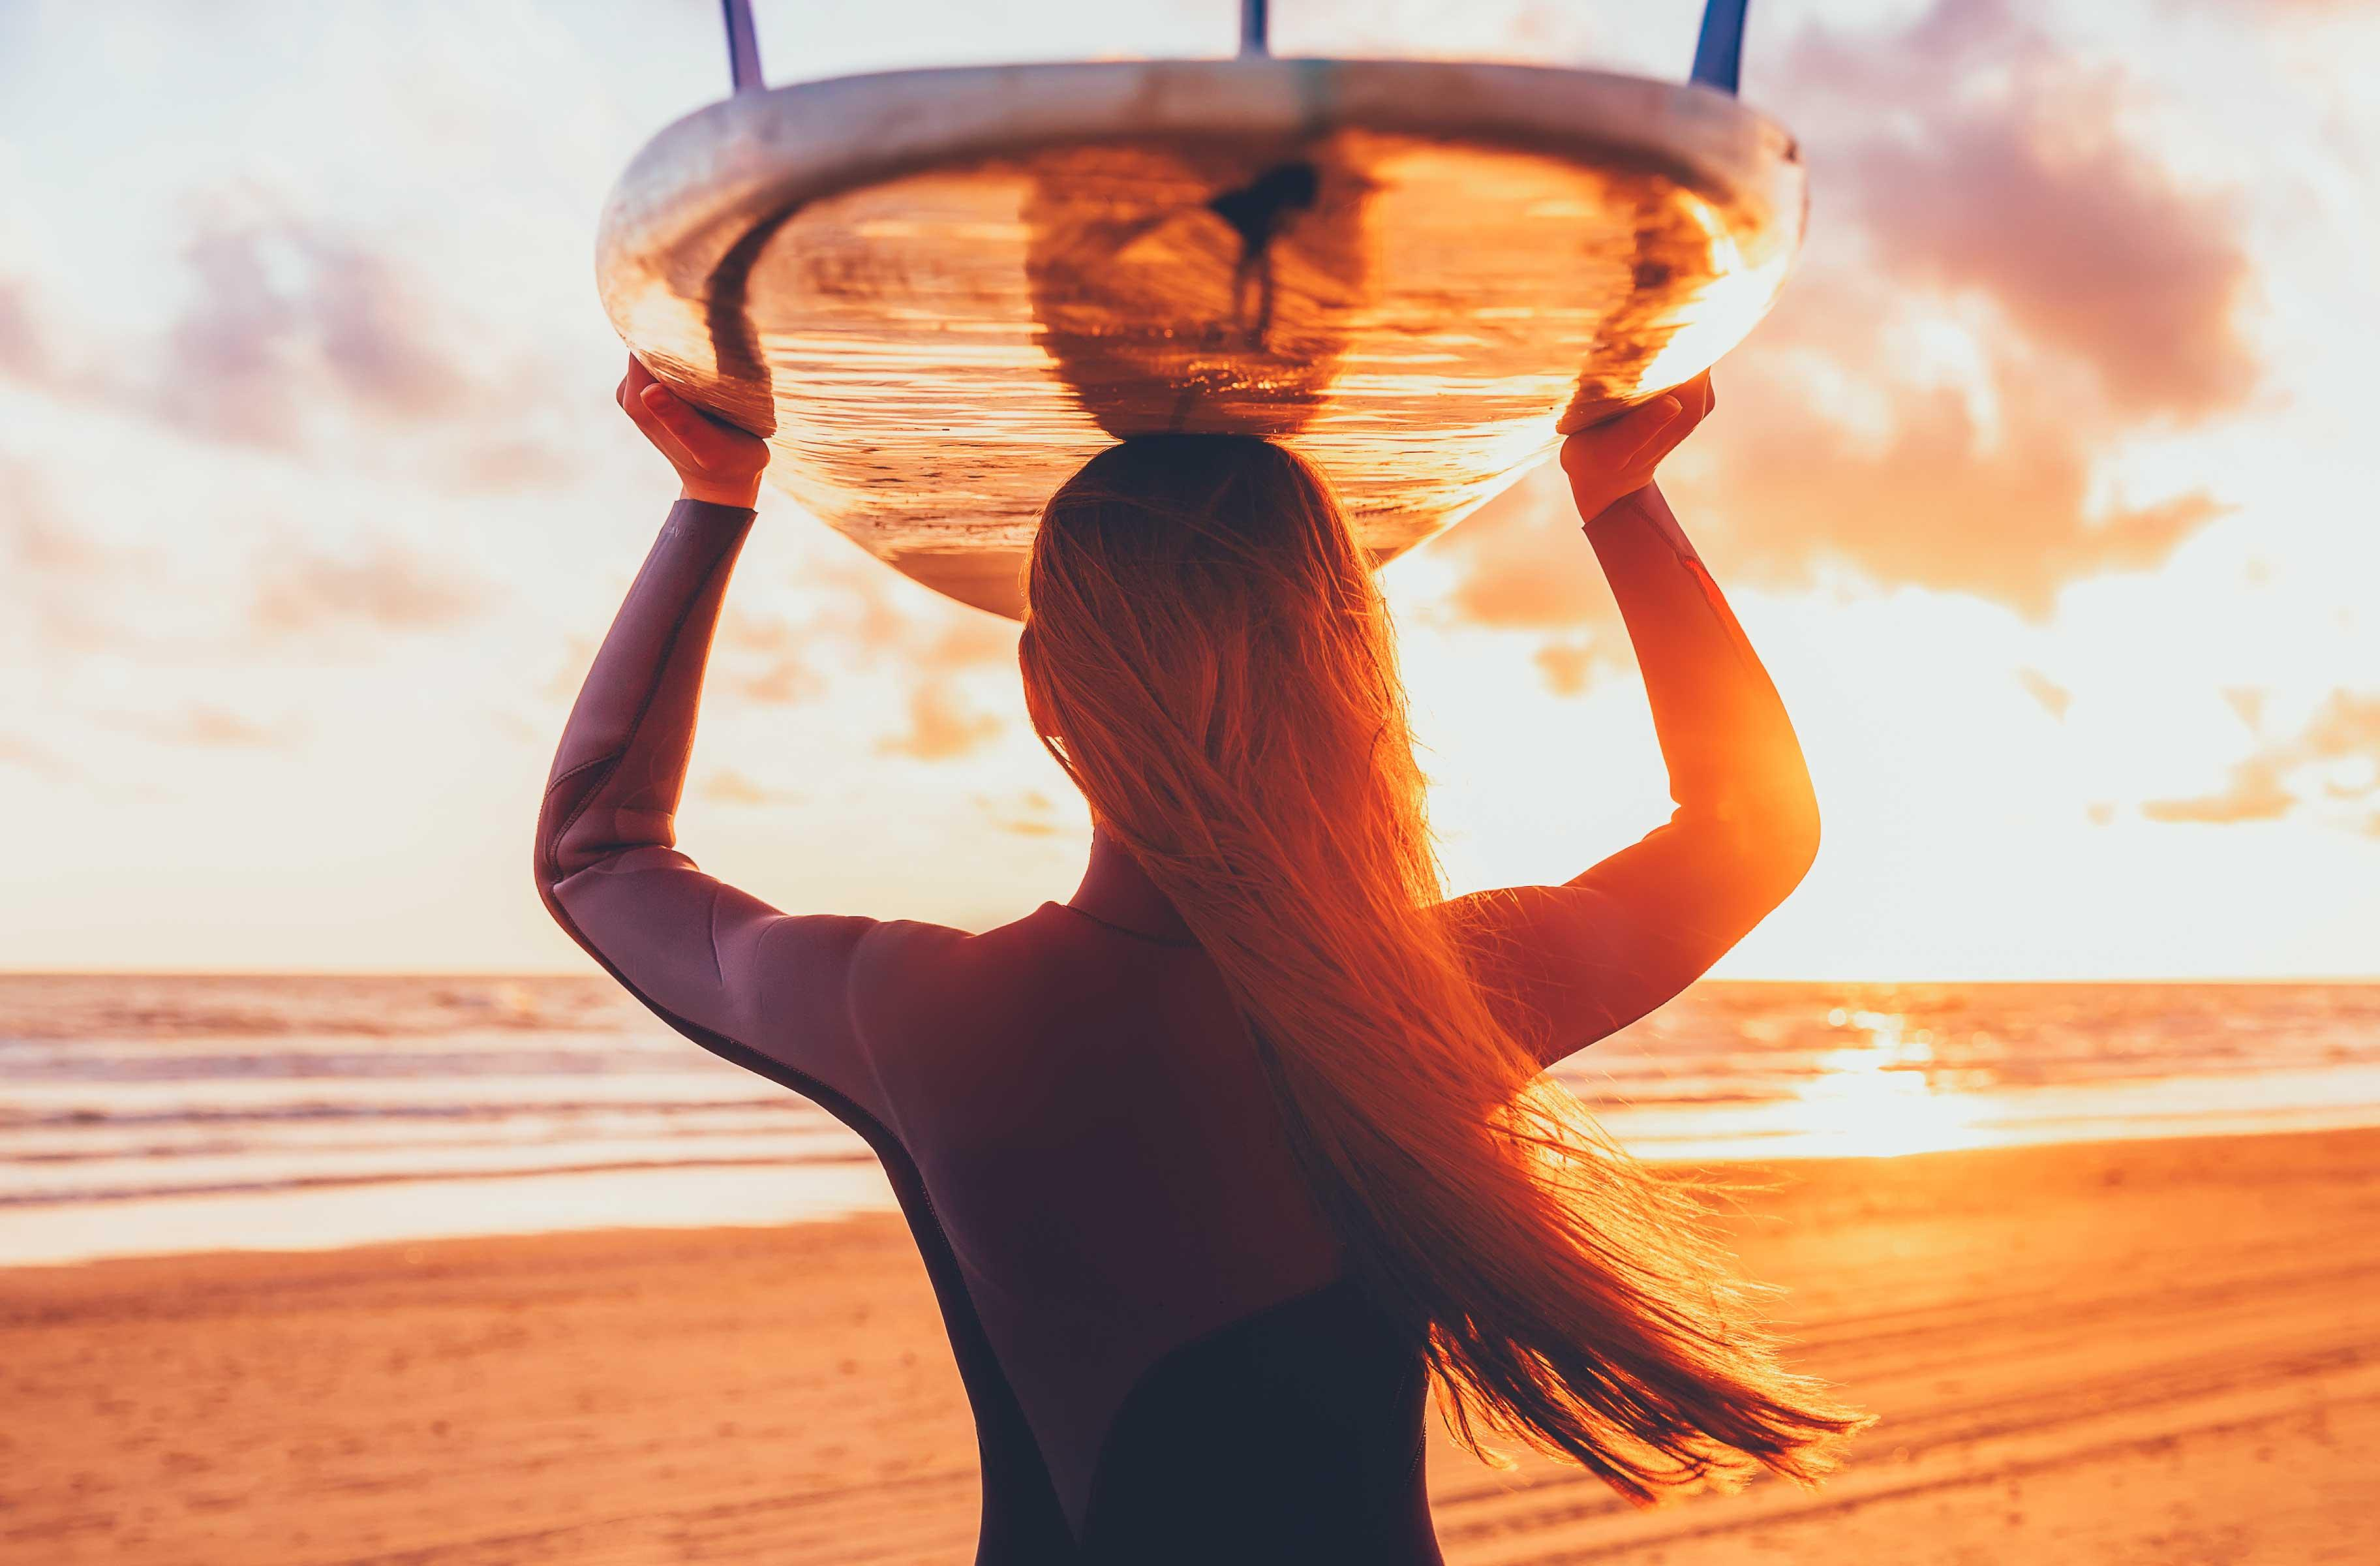 A surfer lady is carrying her surfboard on her head